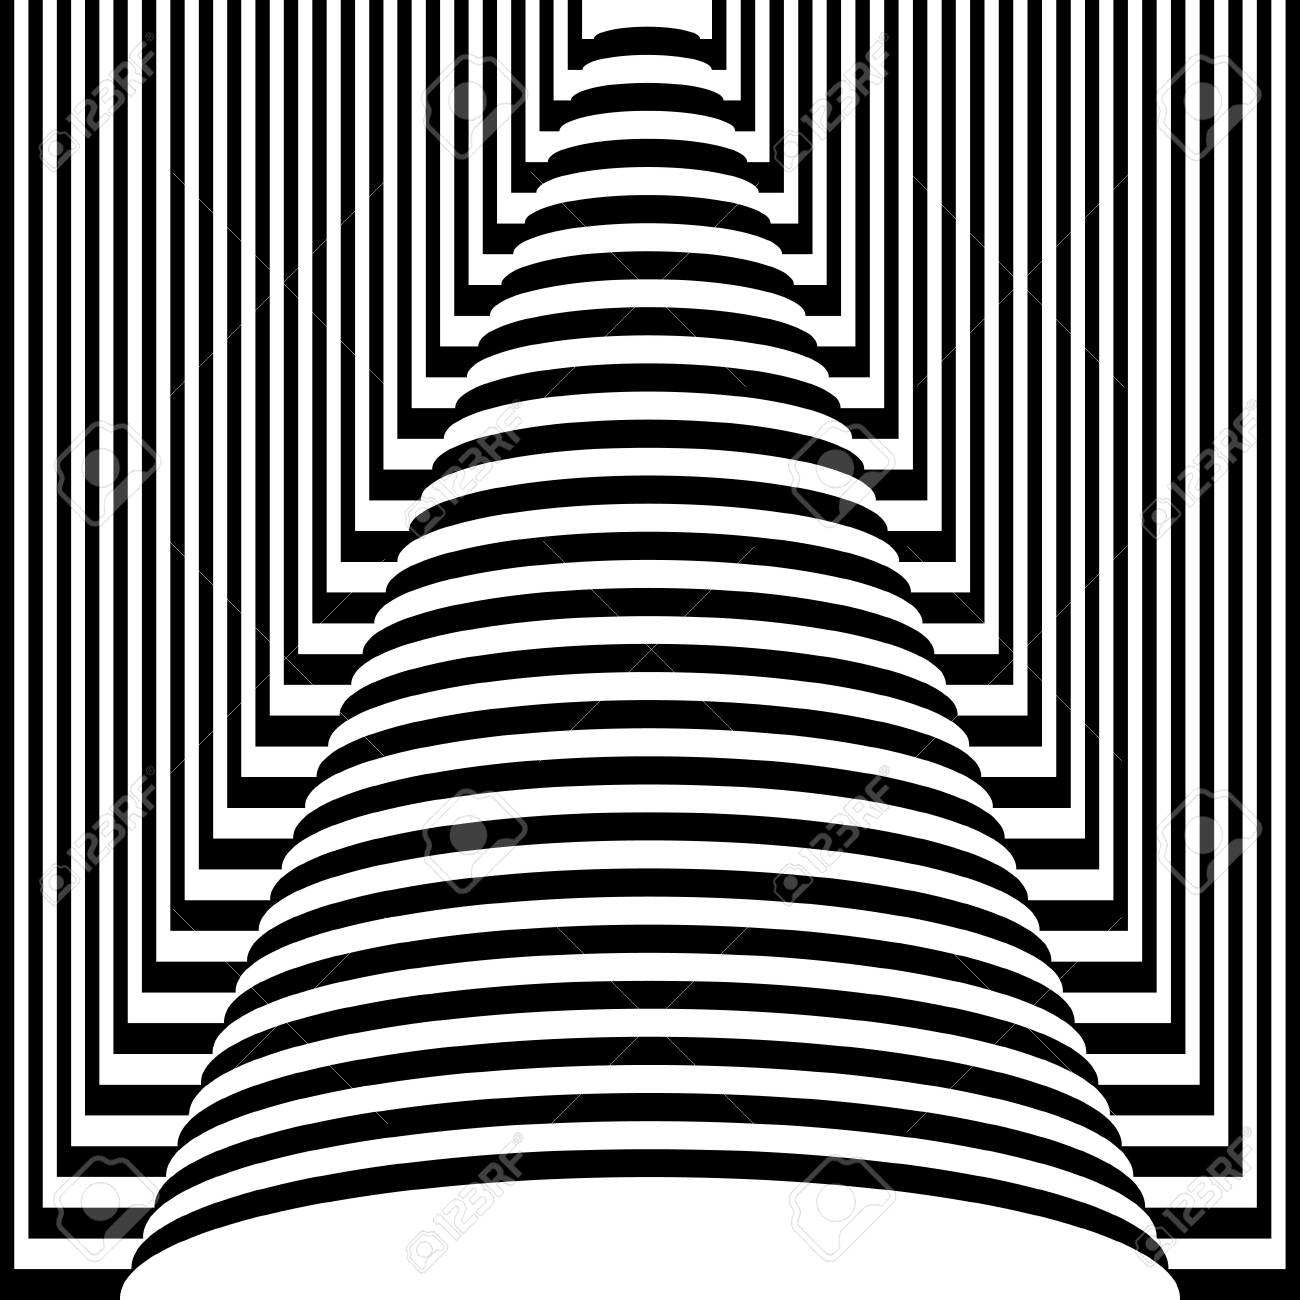 Abstract black and white striped background. Geometric pattern with visual distortion effect. Optical illusion. Op art. - 117017101